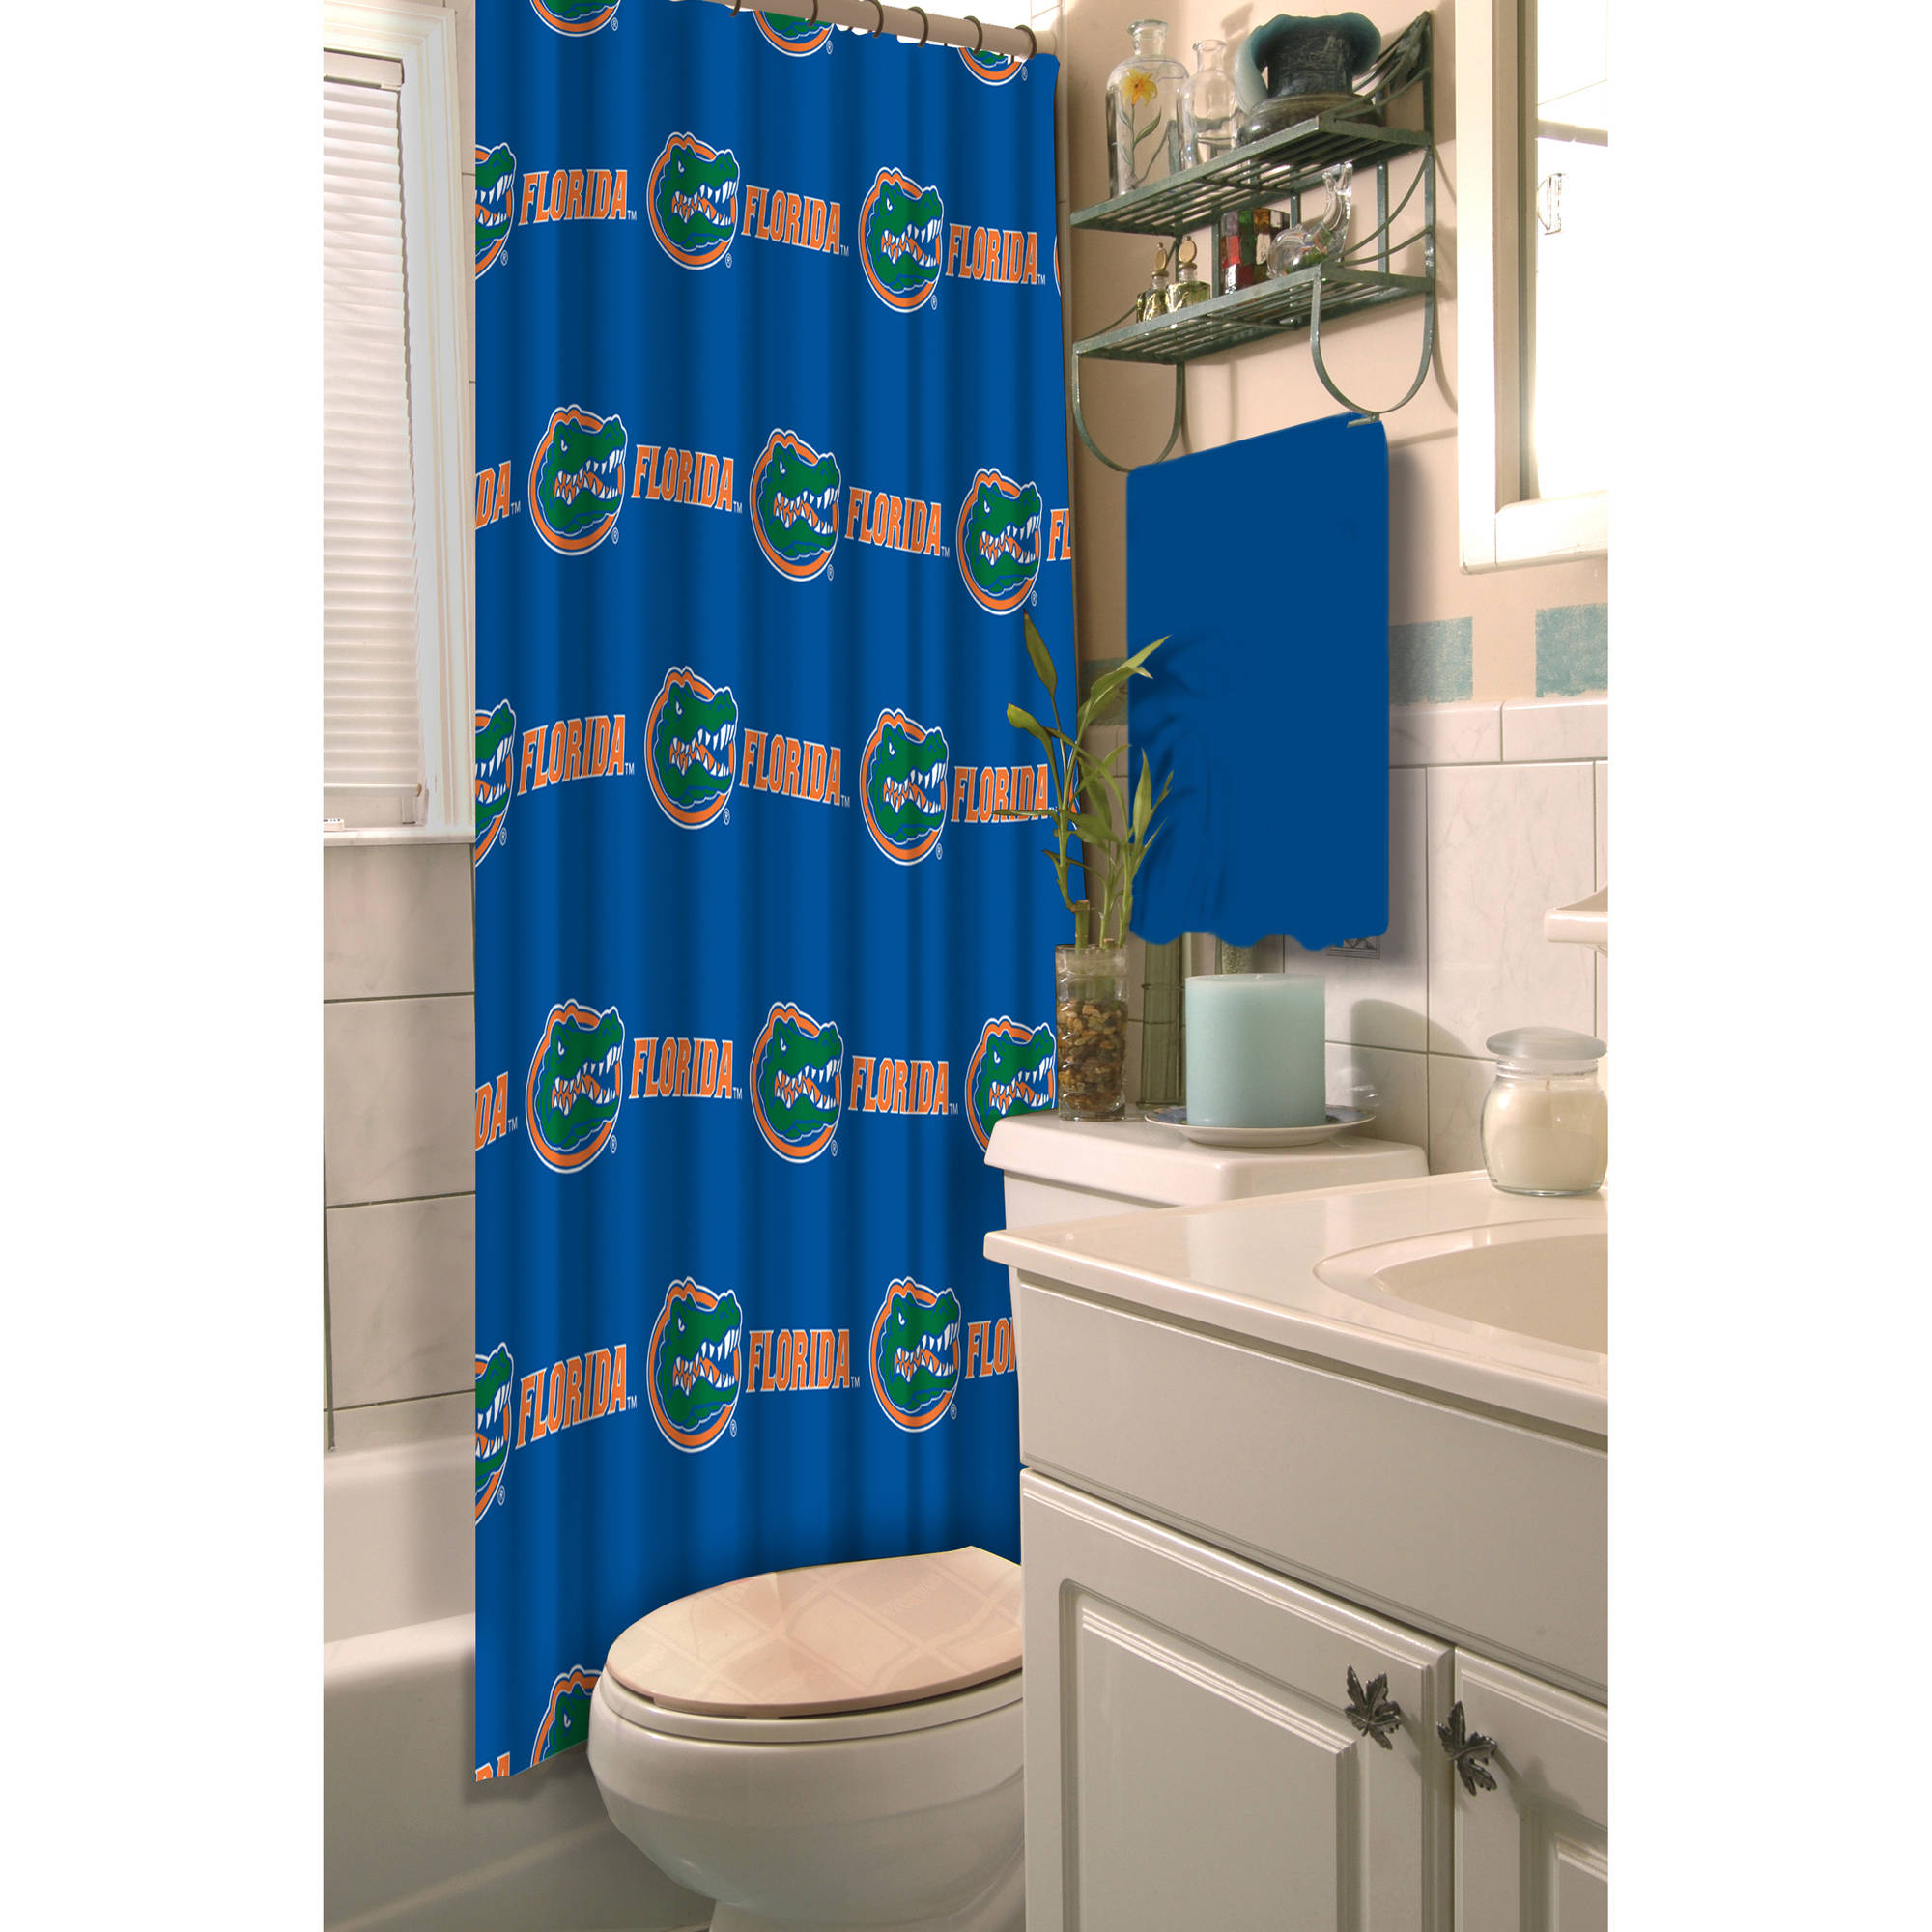 NCAA University of Florida Decorative Bath Collection - Shower Curtain